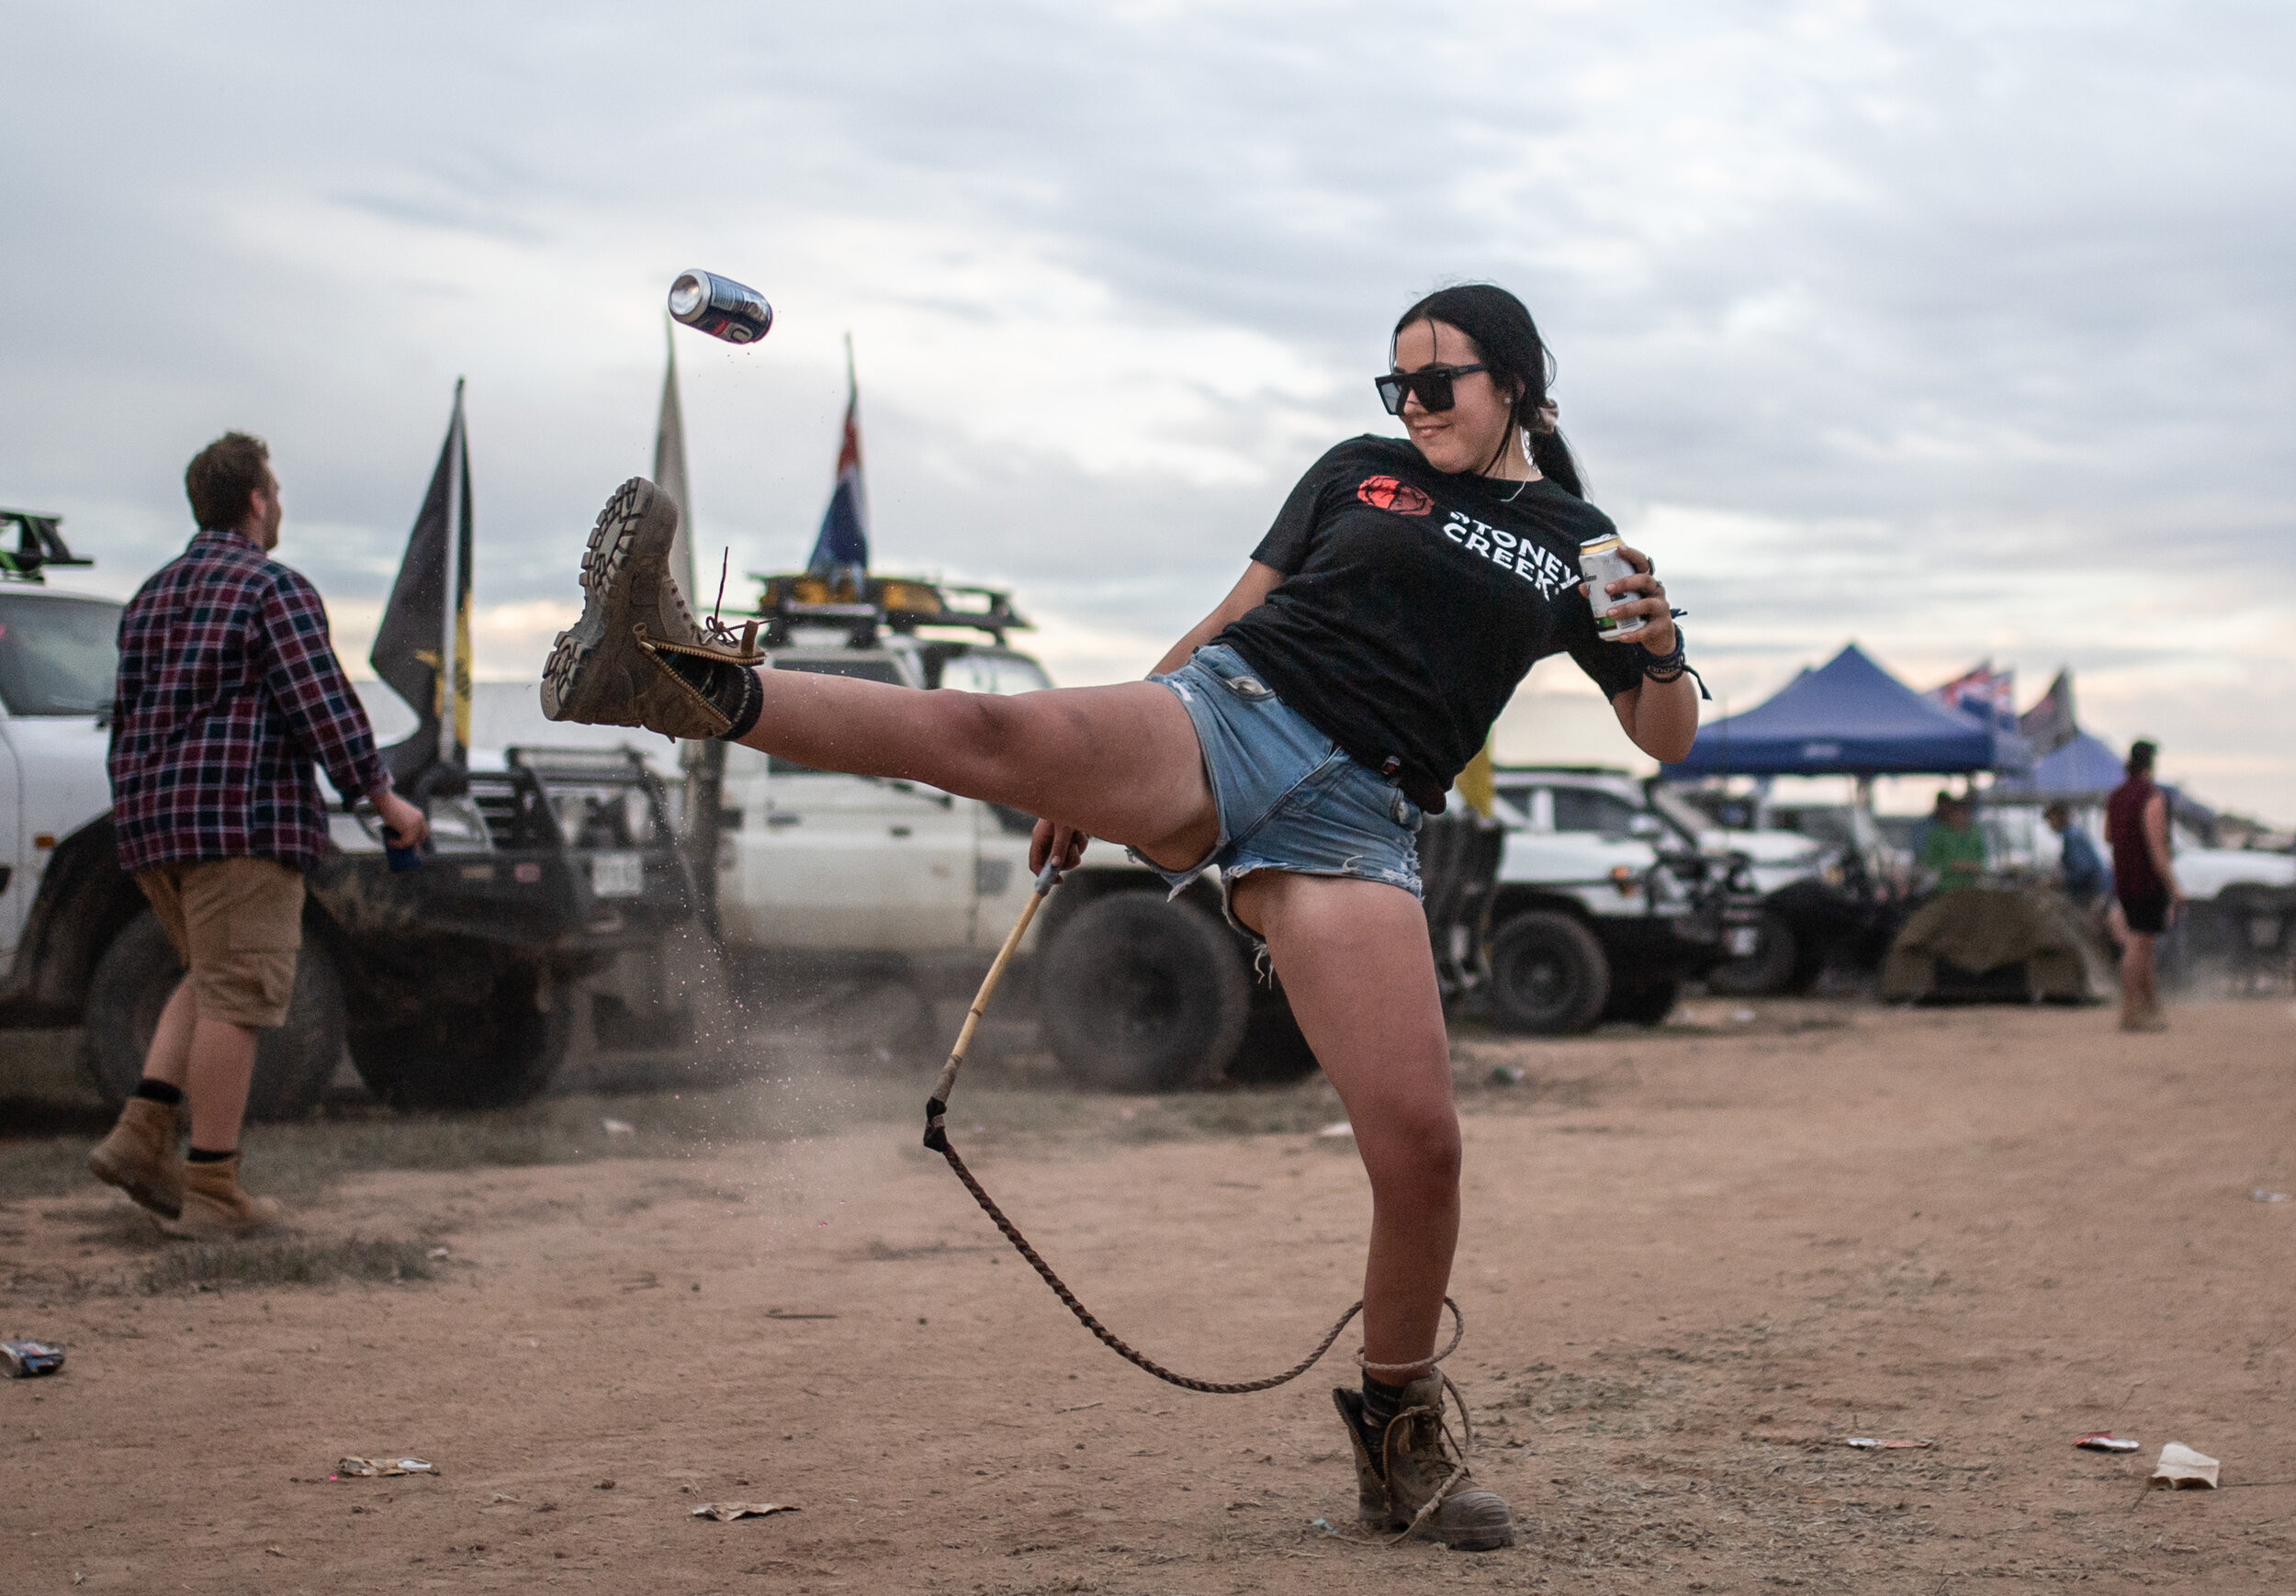 Ute Enthusiasts Gather For 21st Annual Deni Ute Muster